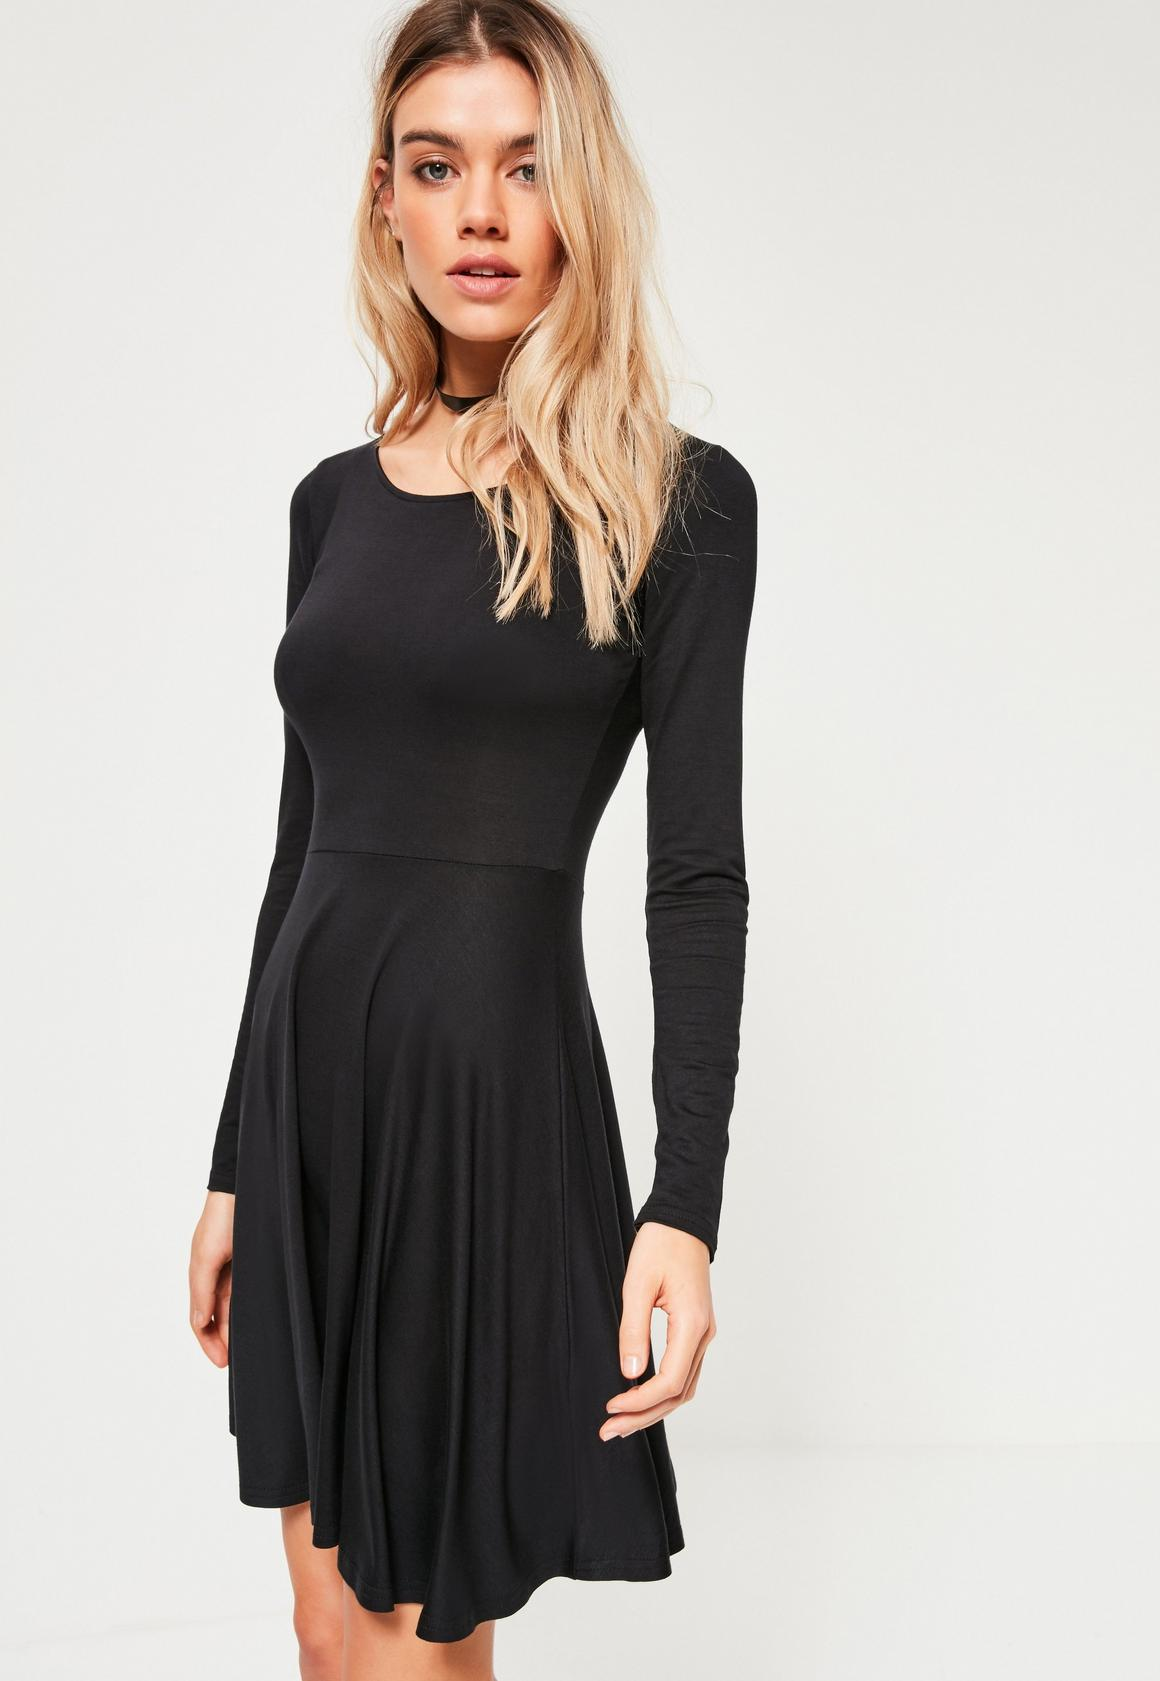 Black dress skater - Black Basic Skater Dress Previous Next